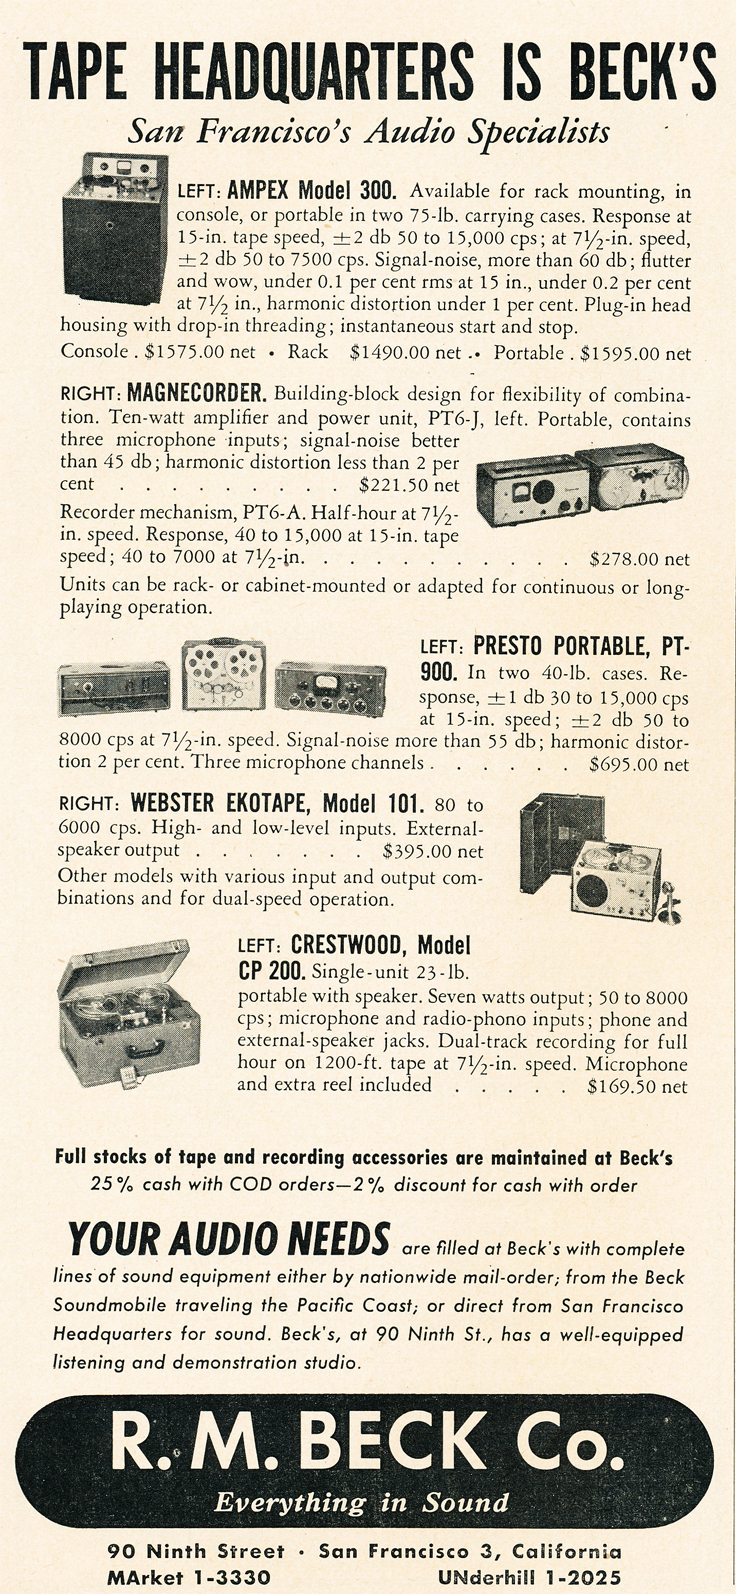 1950 ad for E. M. Becks in Reel2ReelTexas.com's vintage recording collection